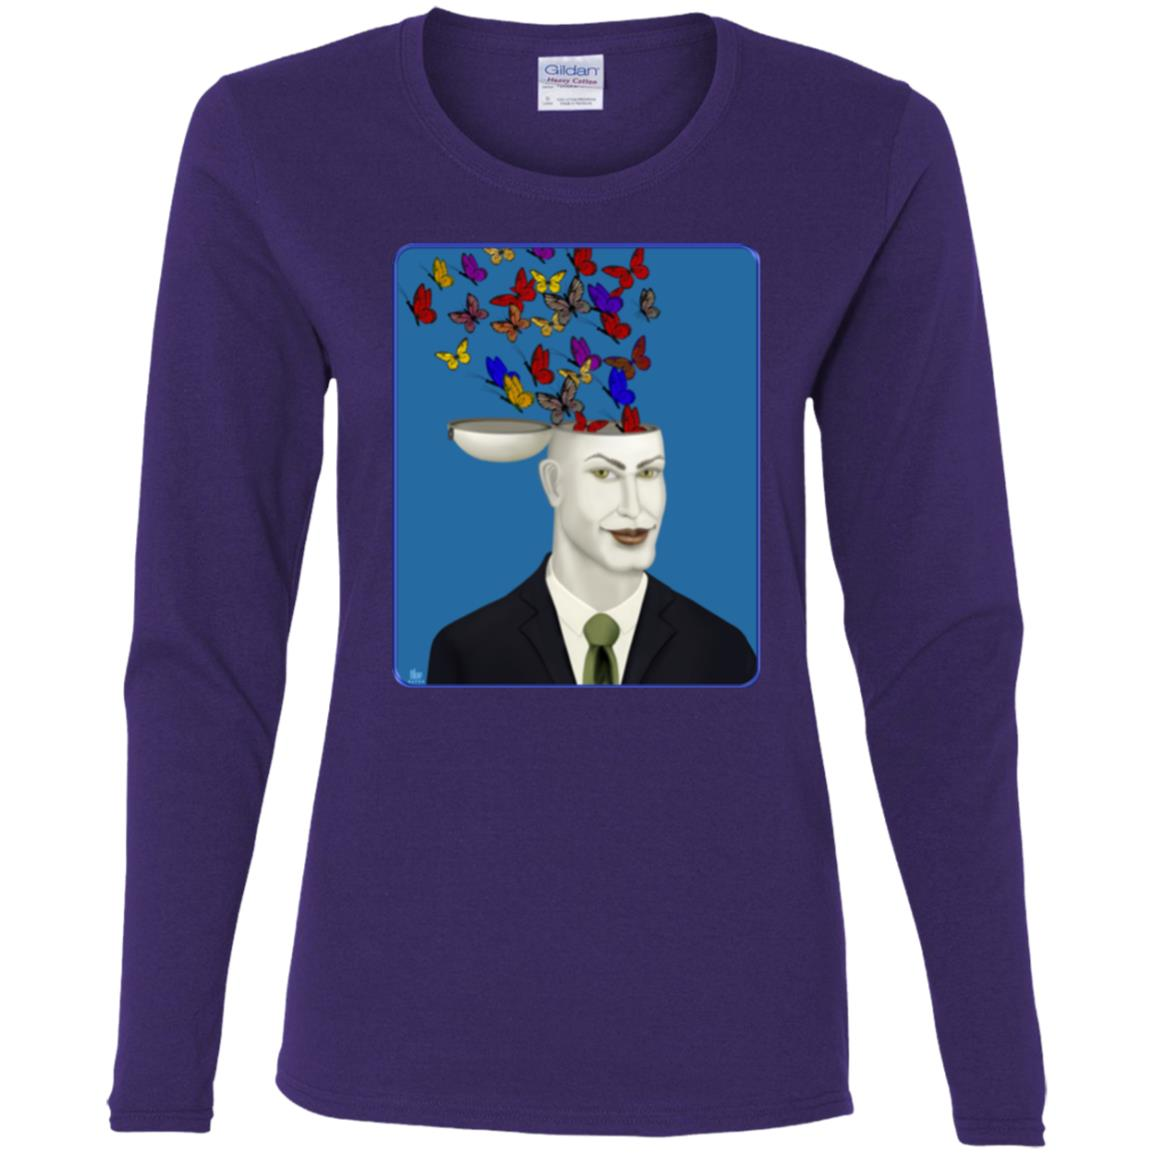 Let Creativity Fly - Women's Long Sleeve Tee